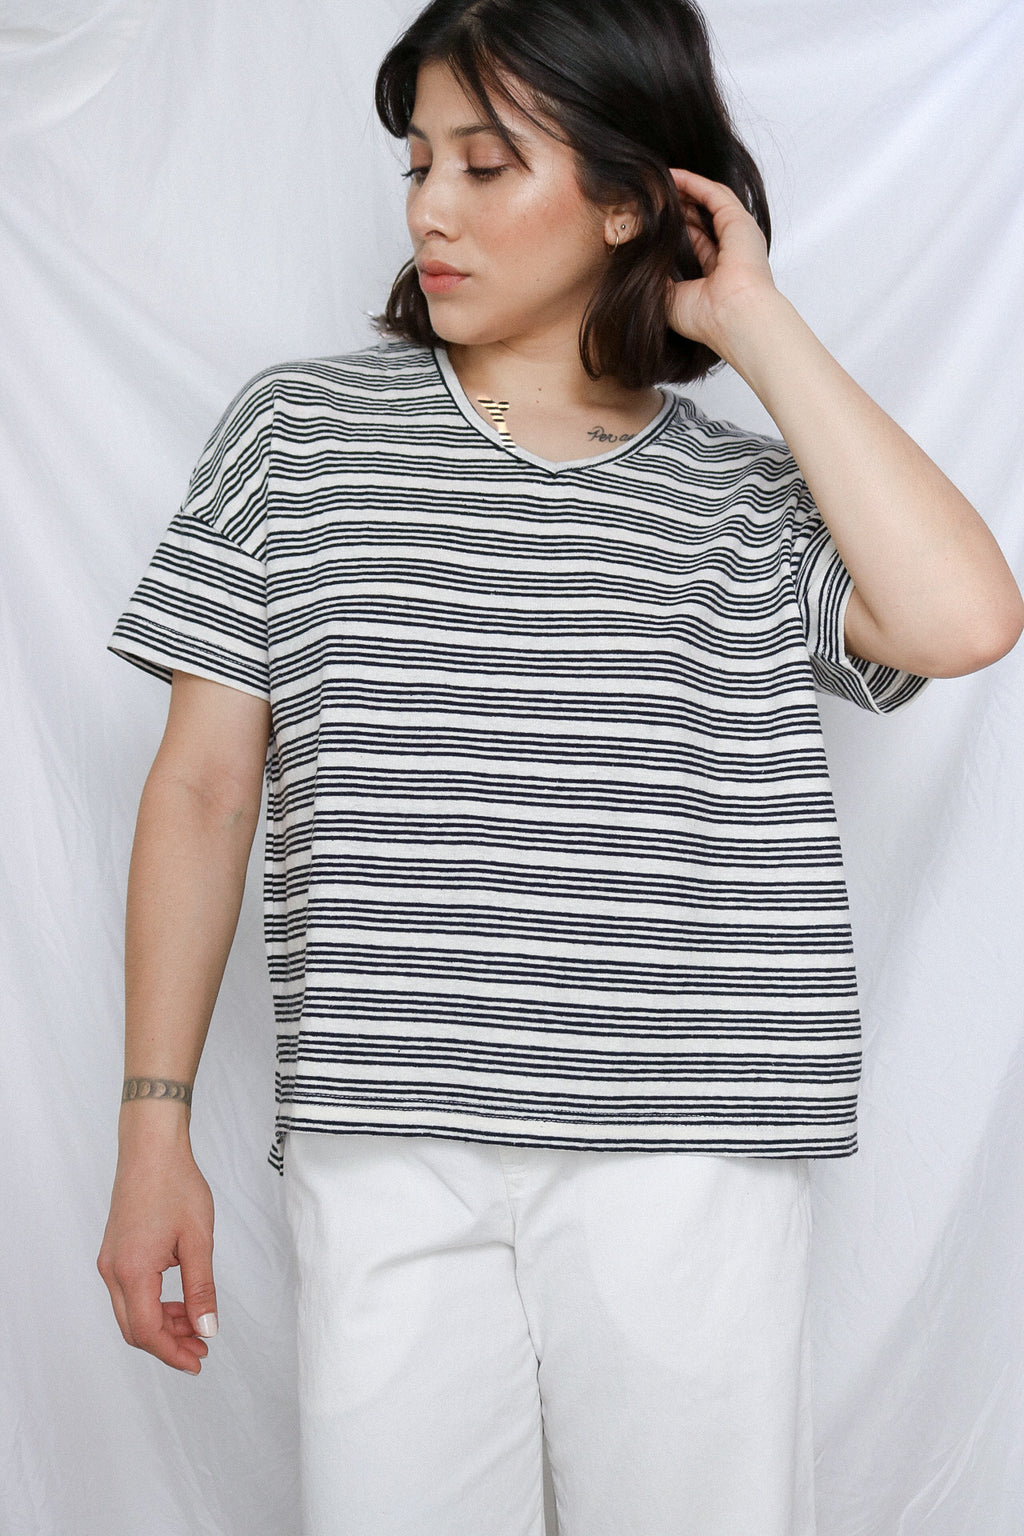 Striped V-Neck Tee - BW Striped